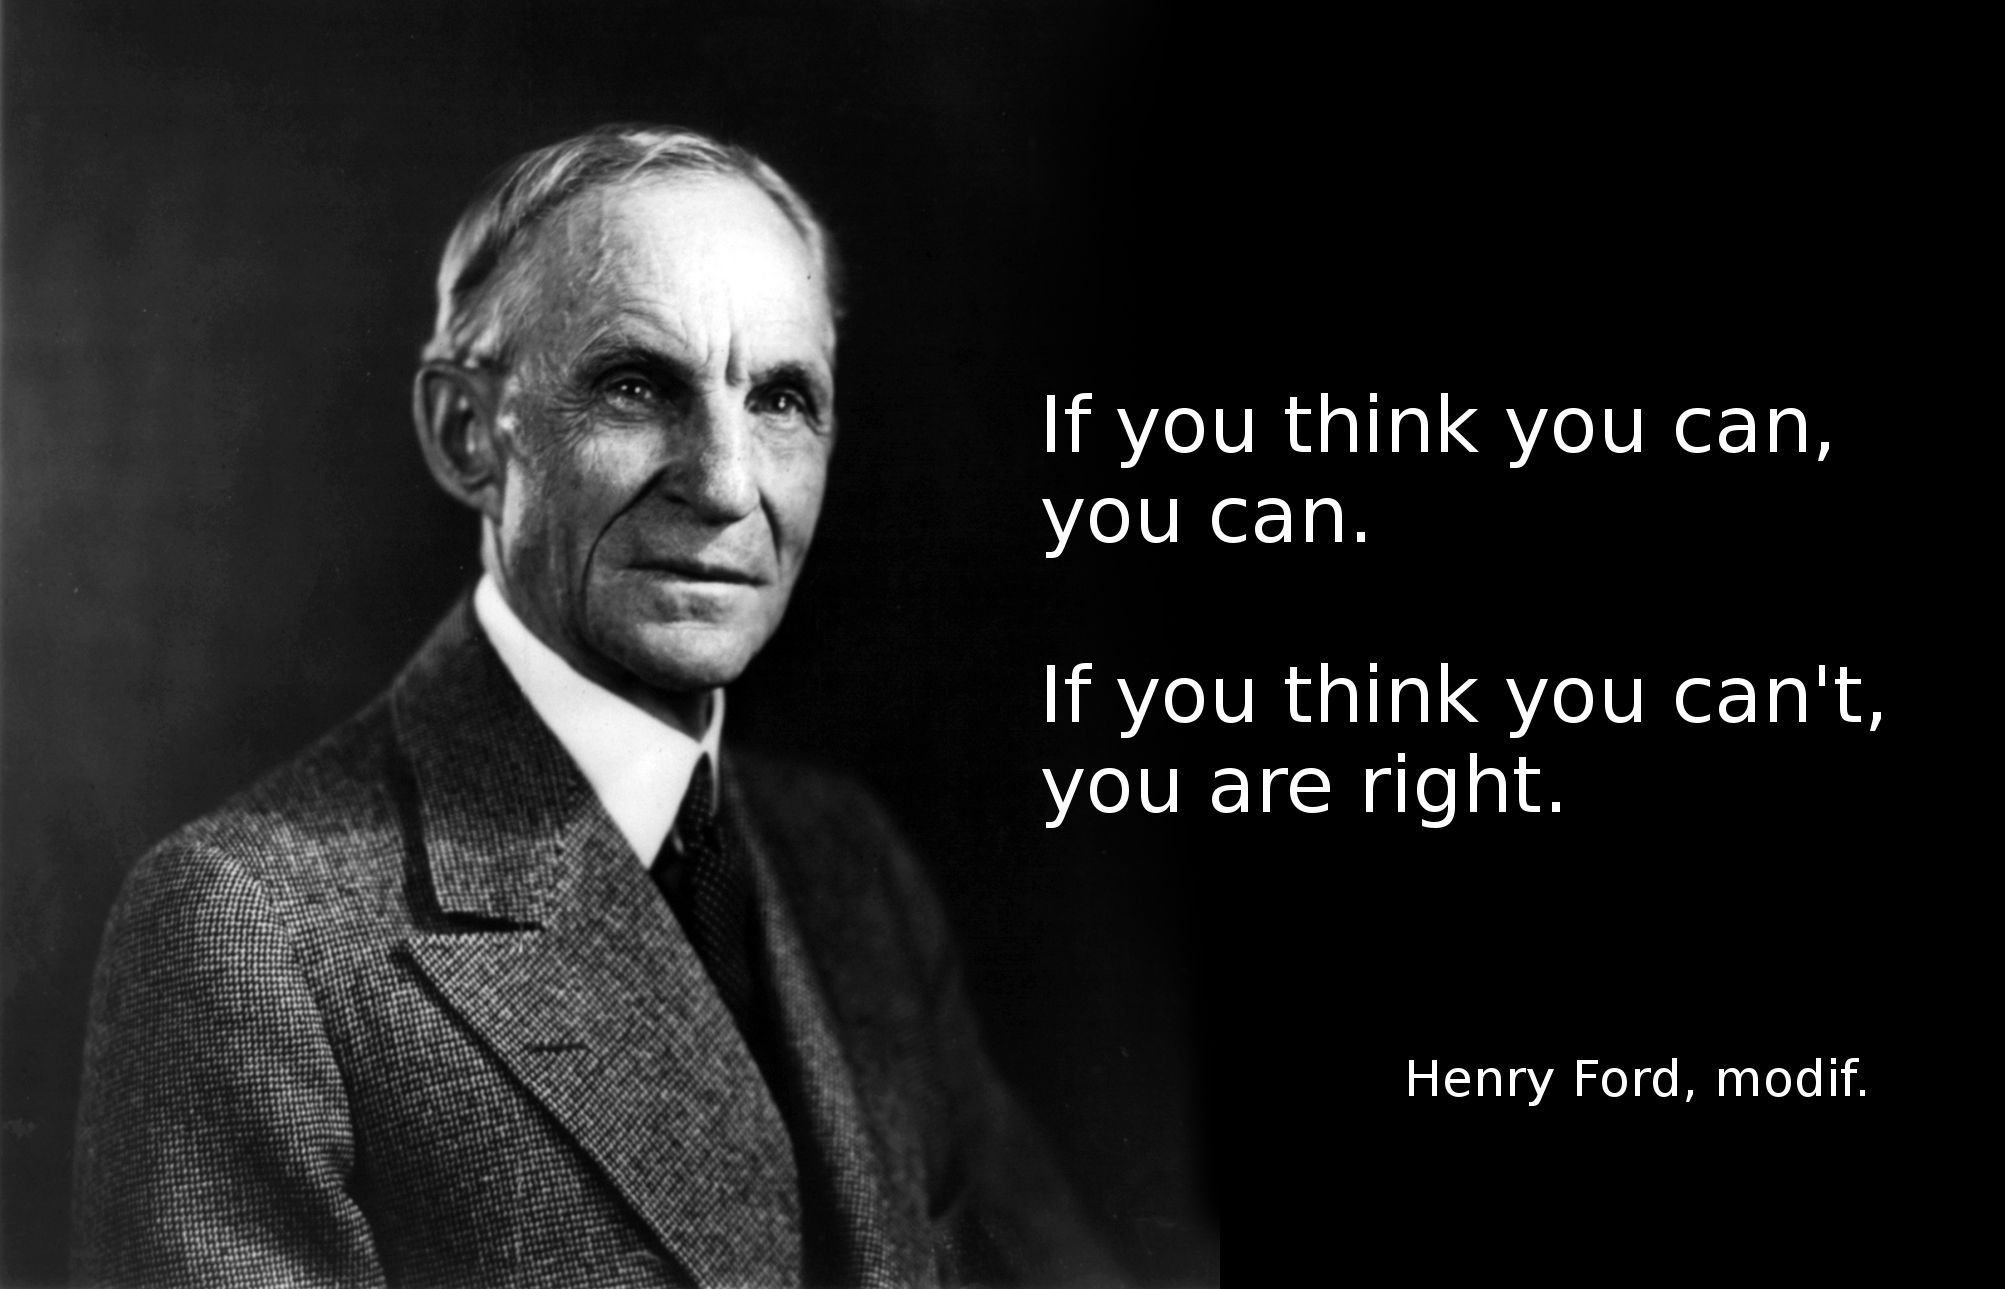 If you think you can, you can. If you think you can't, you are right. -Henry Ford